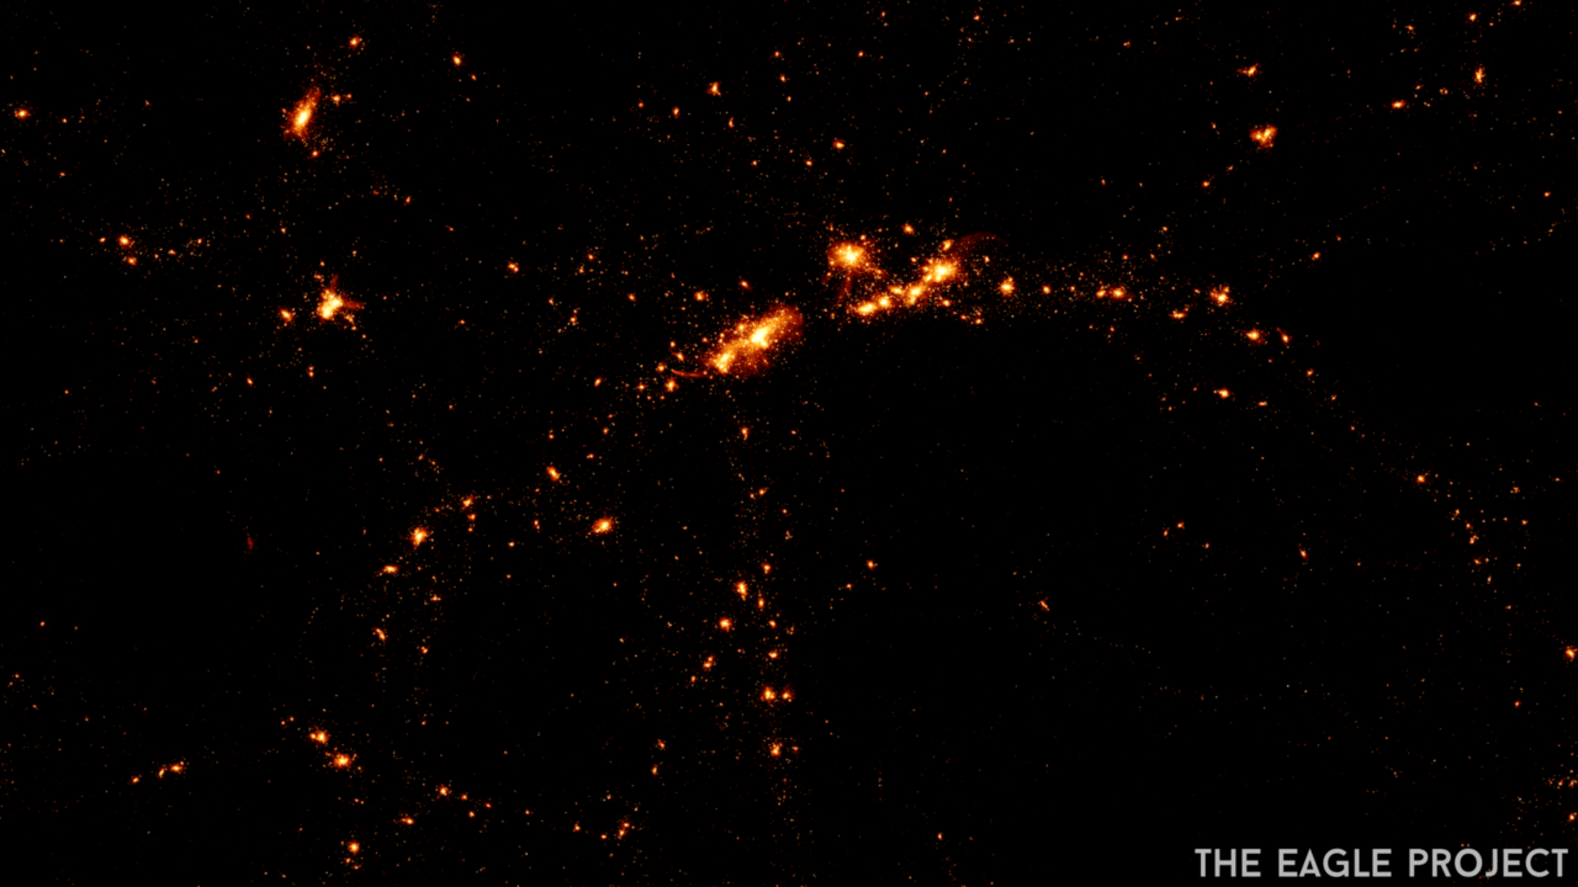 Numerical visualizations of the stars in galaxies forming in the early universe. - Image Credit: The Eagle Project, Durham University, CC BY-ND